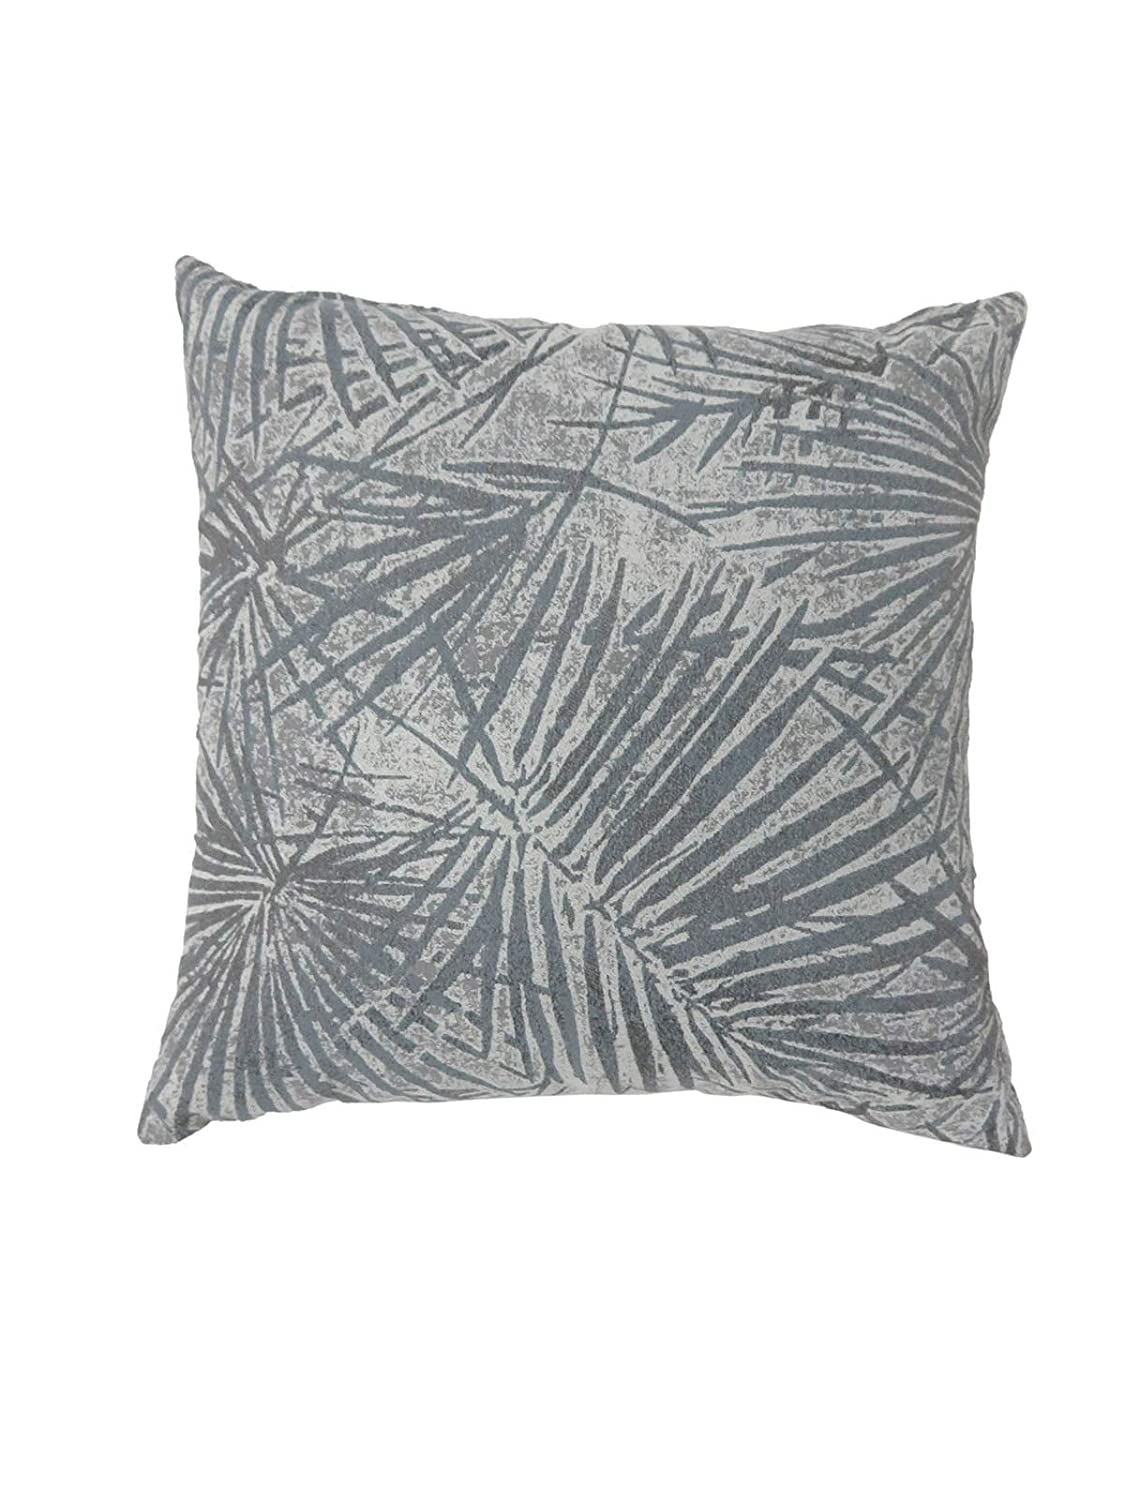 Set of Two Benzara BM178010 Contemporary Style Palm Leaves Designed Throw Pillows Gray